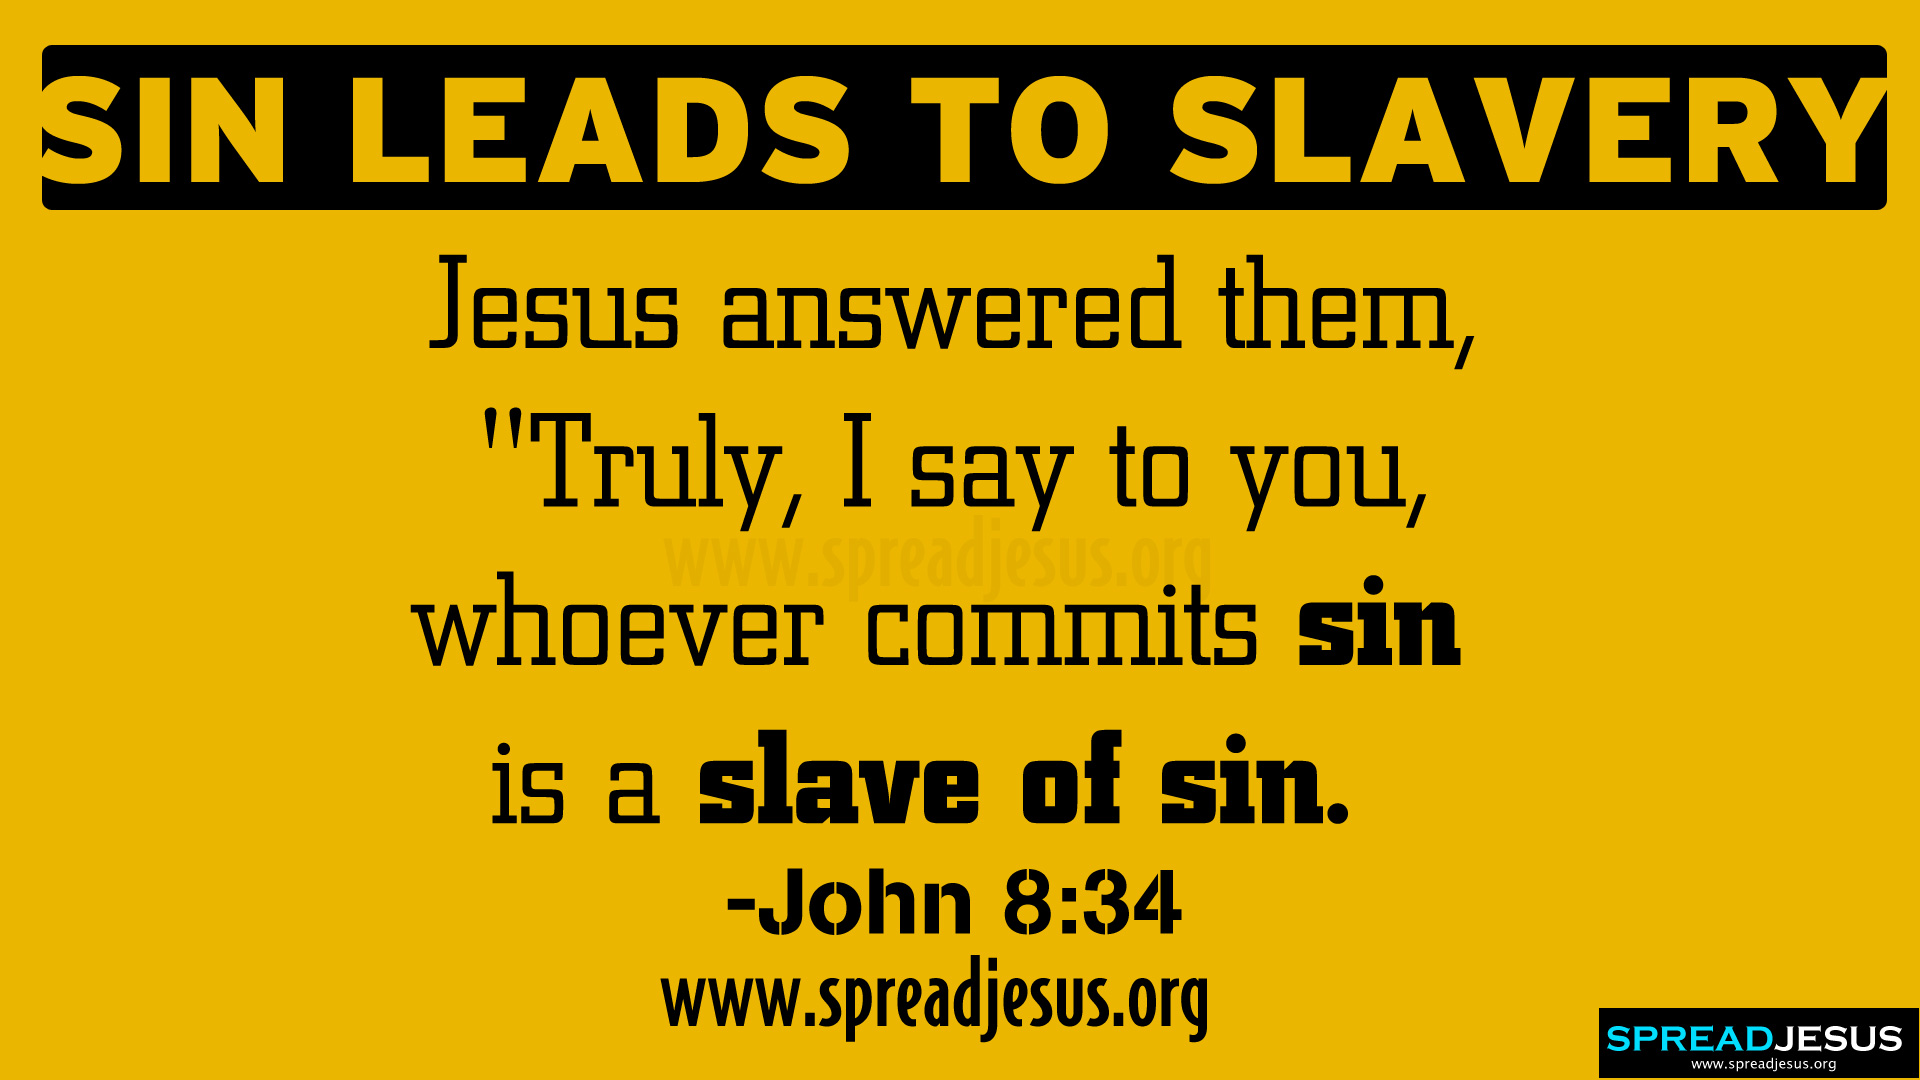 SIN LEADS TO SLAVERY  BIBLE QUOTES HD-WALLPAPERS -JOHN 8:34